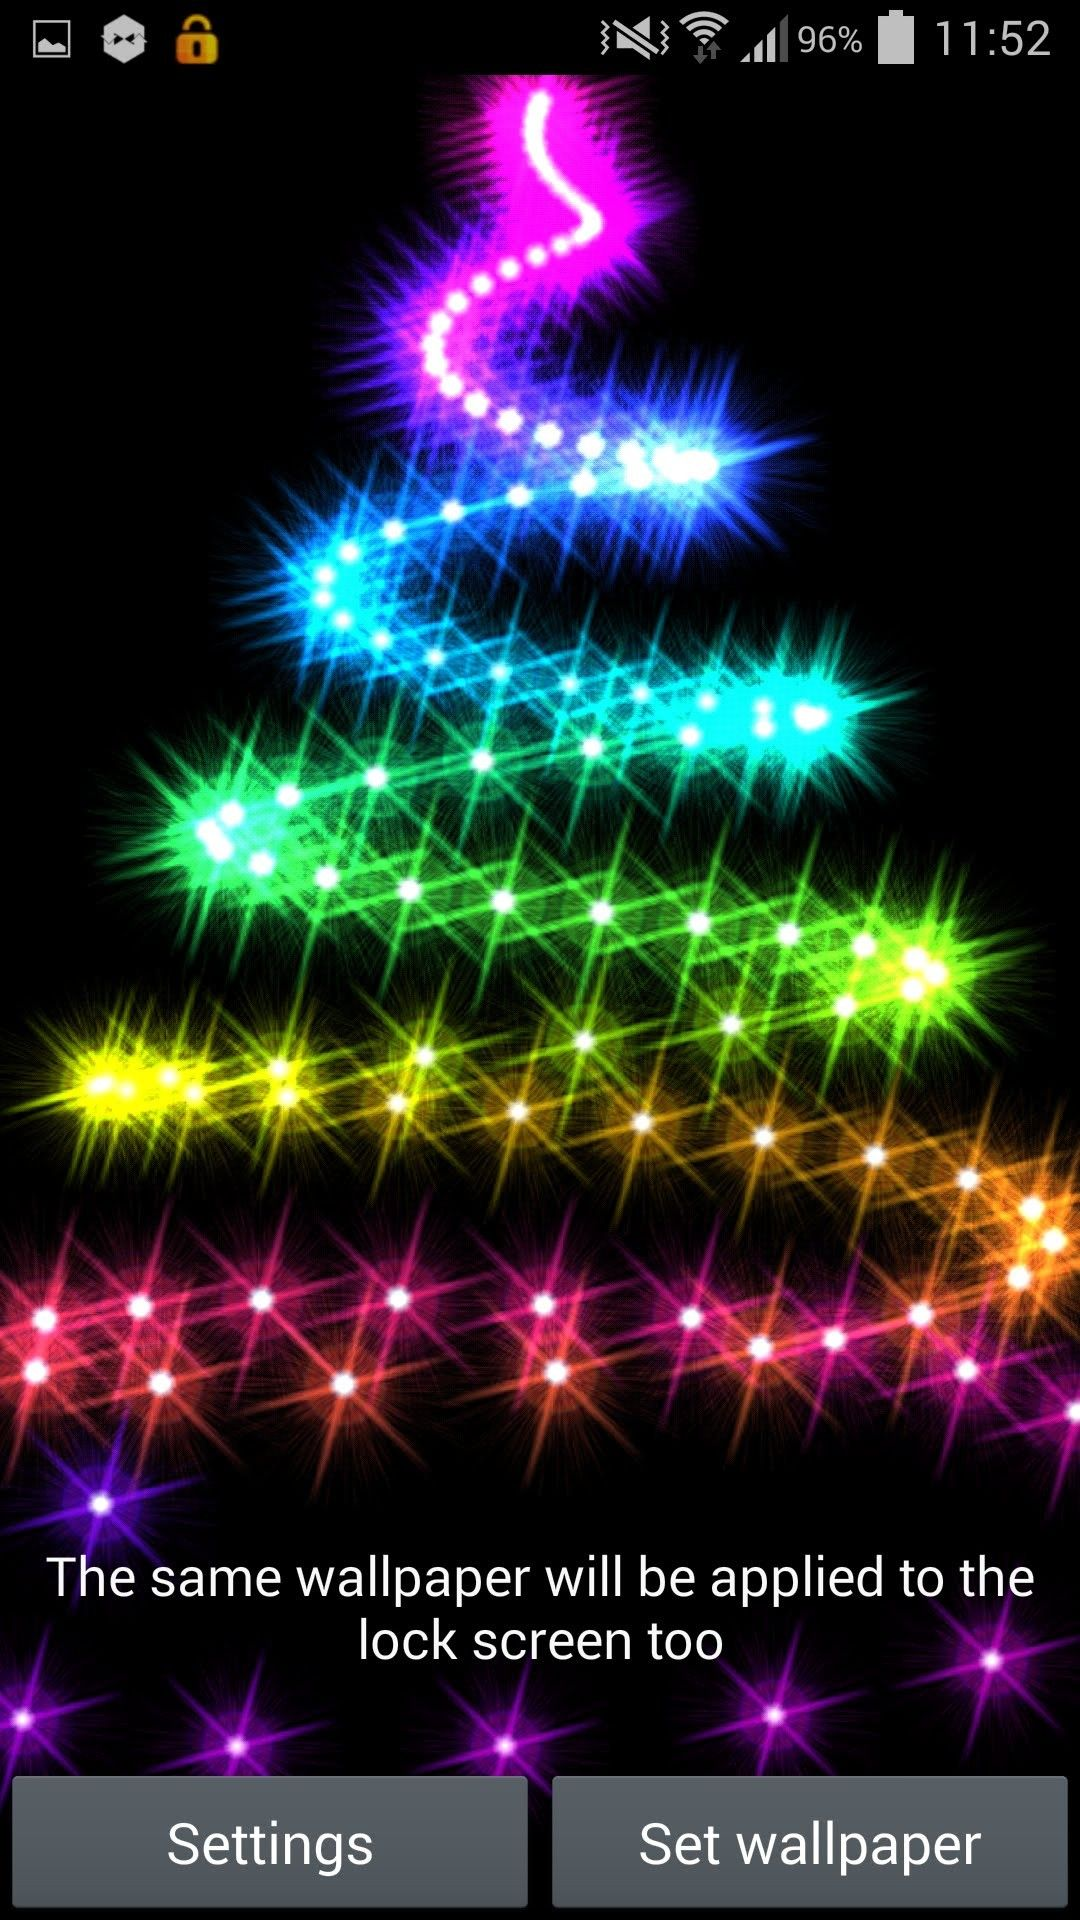 Elegant Christmas Lights Live Wallpaper Android Check More At Https Zdwebhosting Com Christmas Lights Live Wallpaper Android